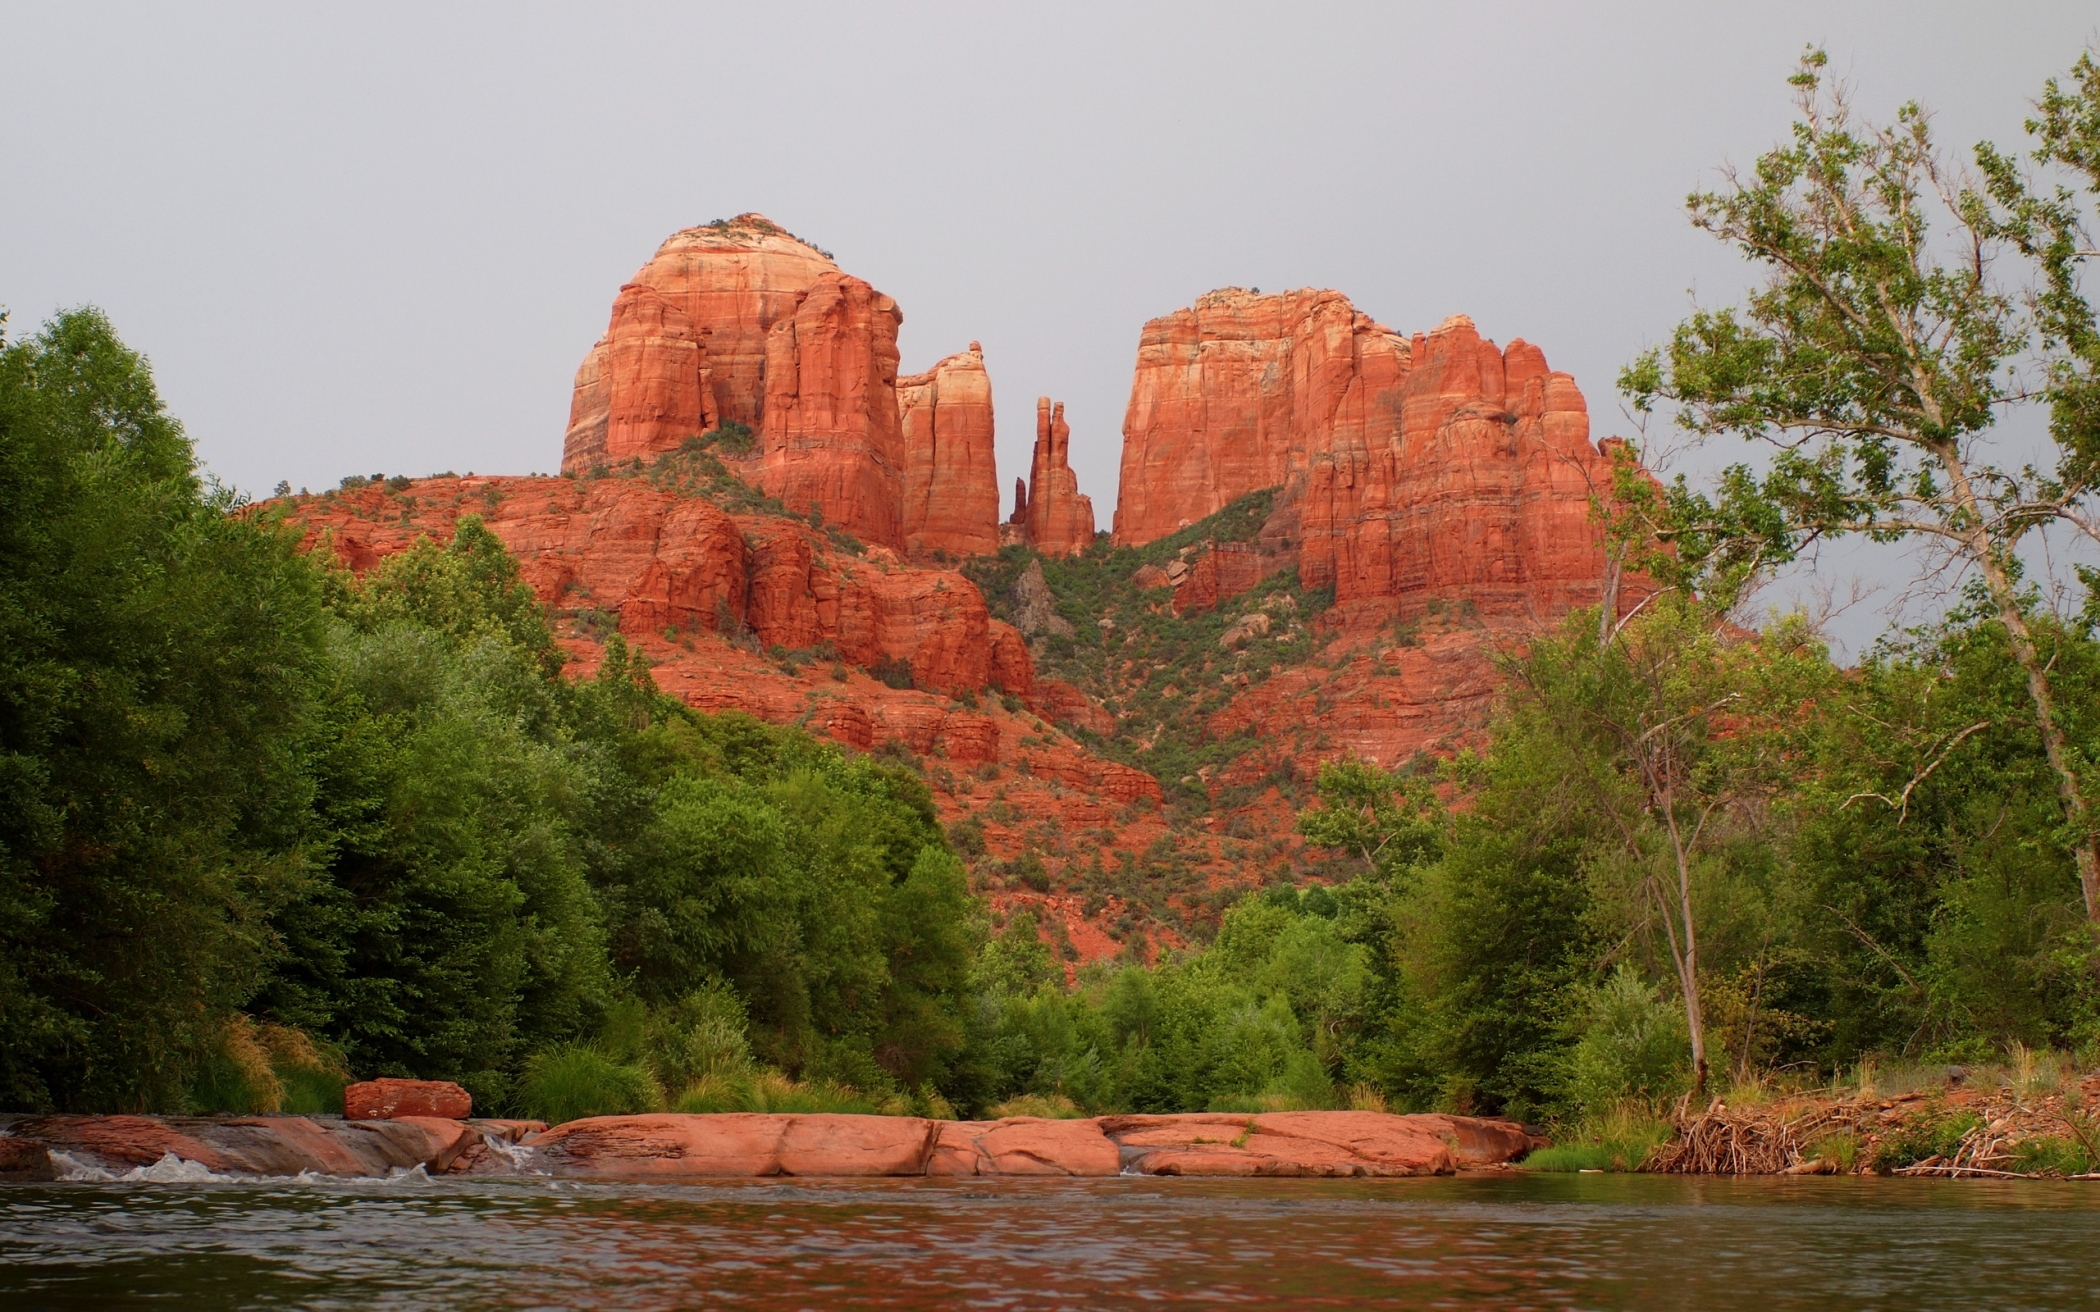 Free download high resolution image - free image free photo free stock image public domain picture -Cathedral Rock in Sedona